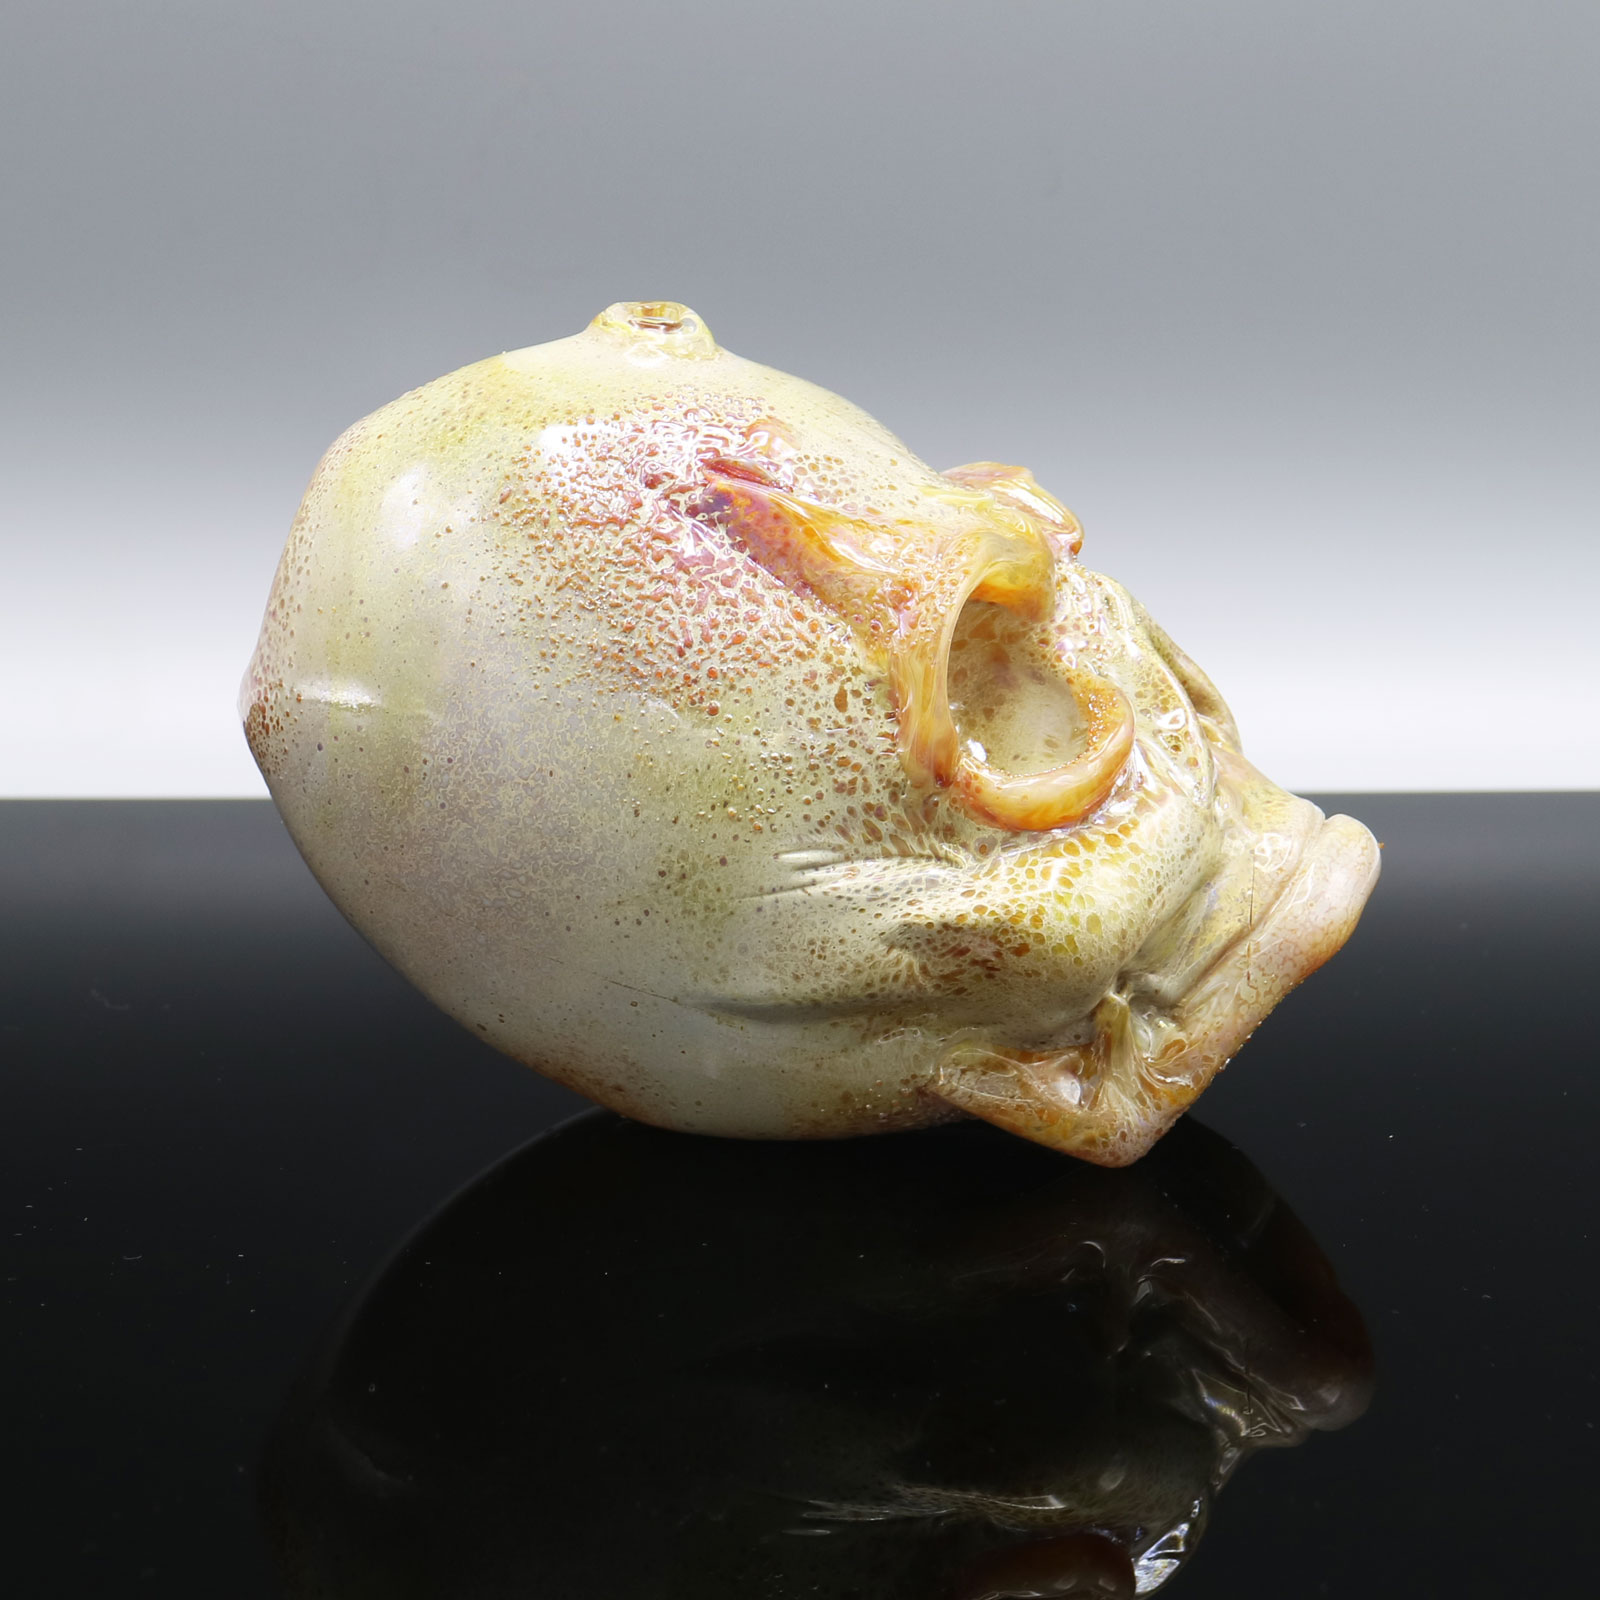 Jonny Carrcass – Mini Functional One Eyed Skull Sculpture